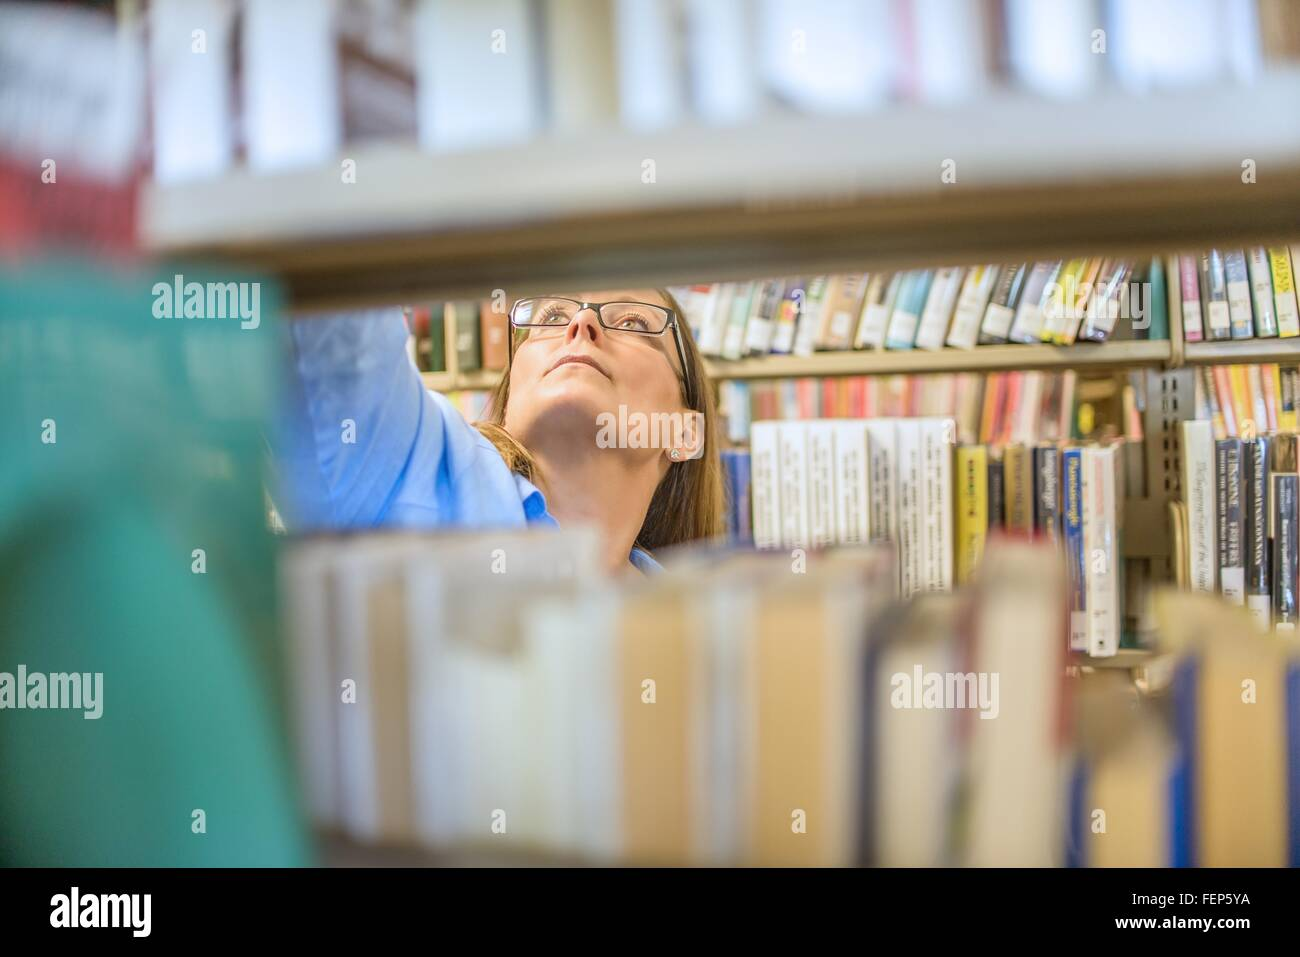 Mature woman behind book shelves in library - Stock Image